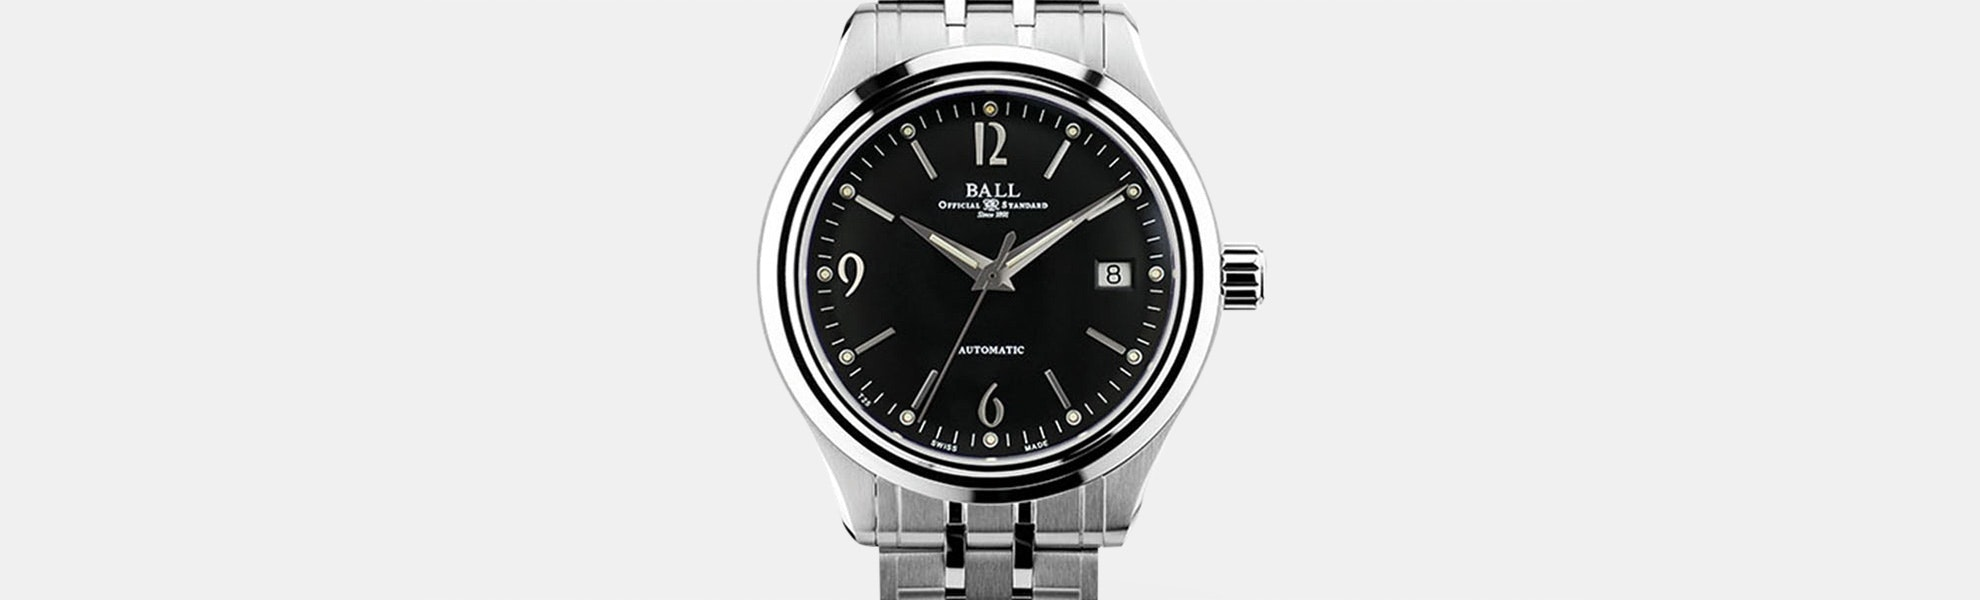 Ball Trainmaster Streamliner Automatic Watch